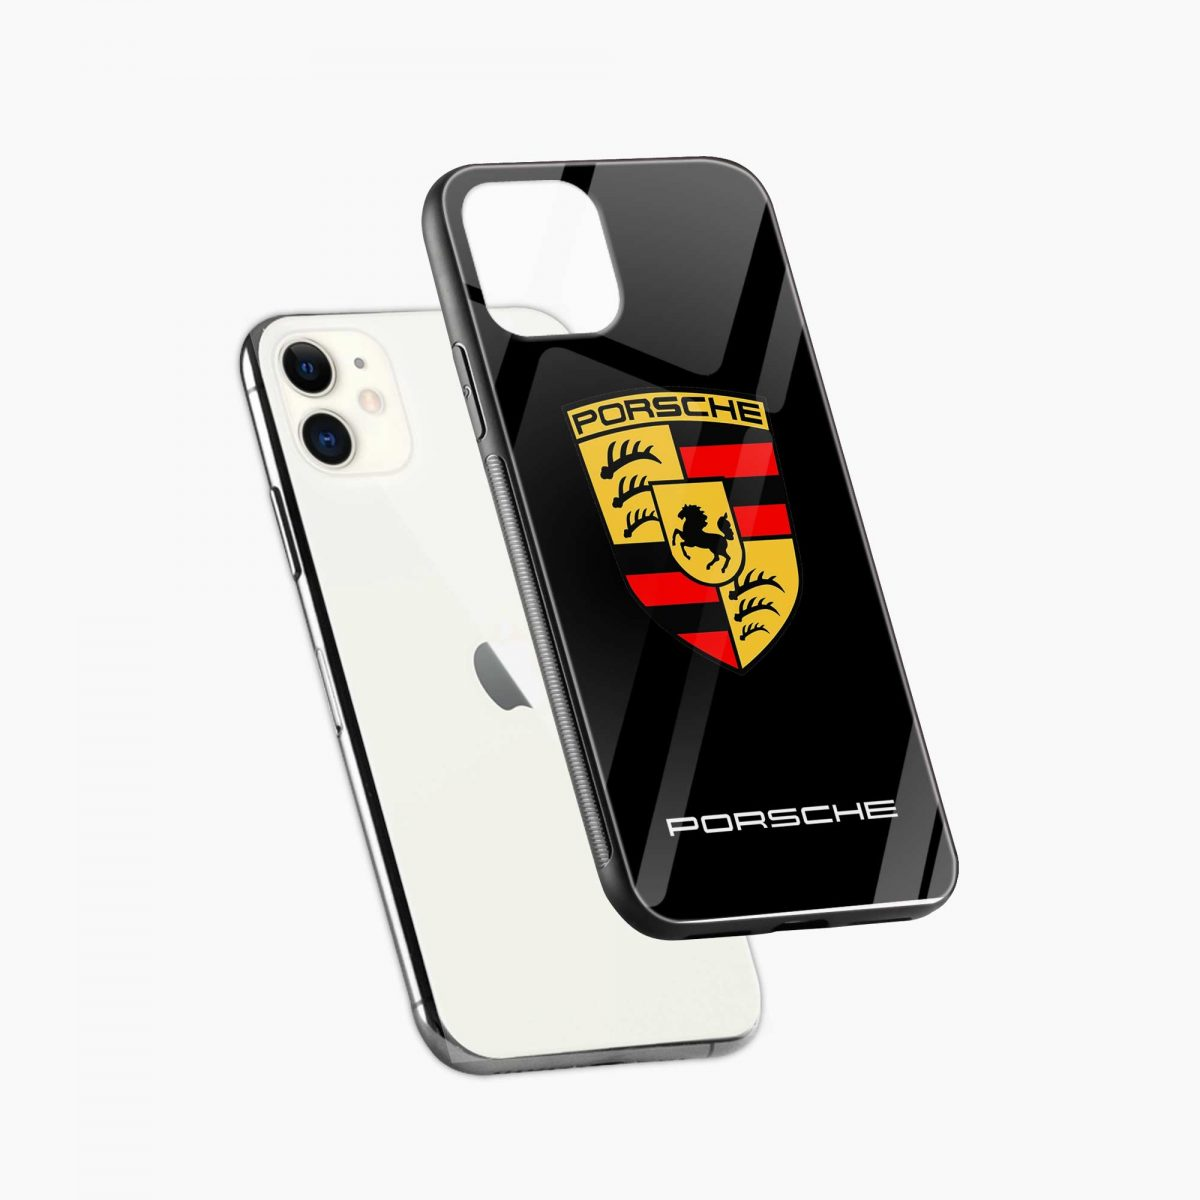 prosche iphone back cover diagonal view